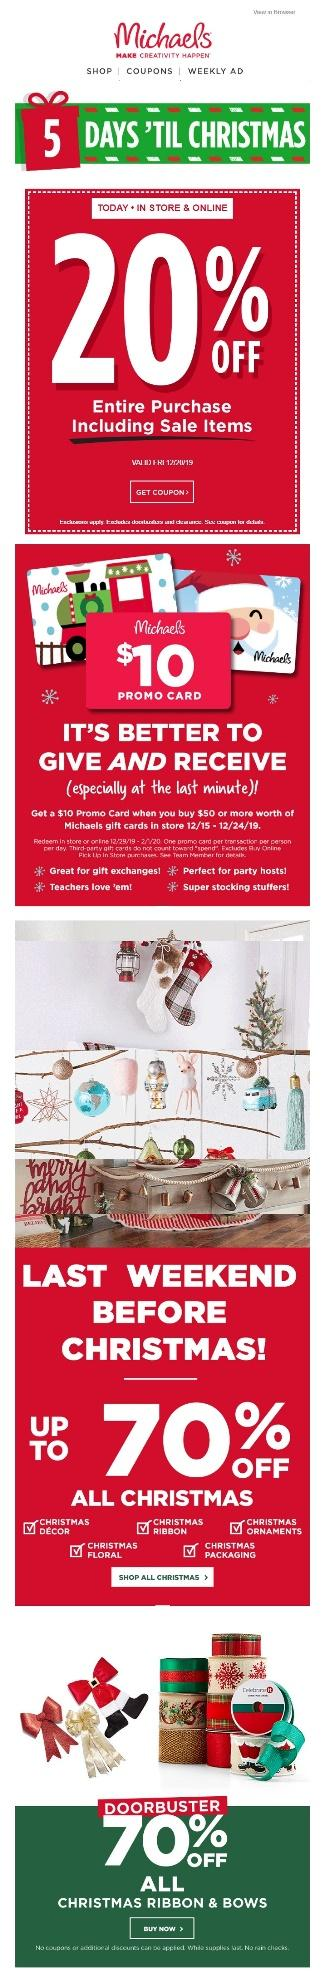 Holiday email examples of exclusive, last-minute deals